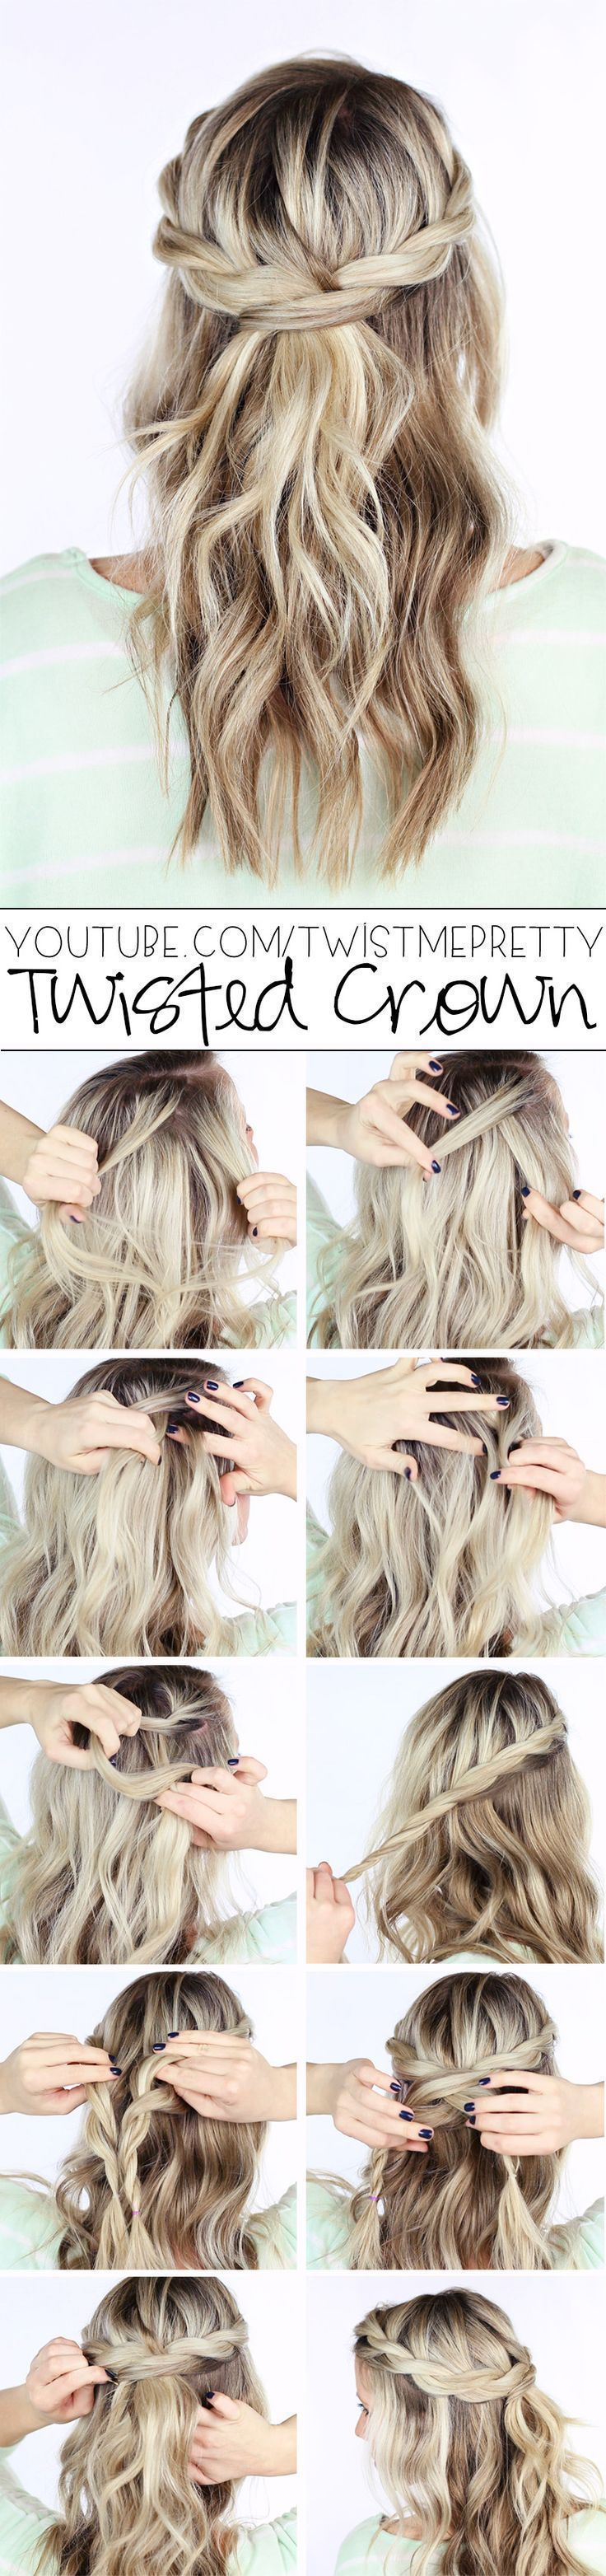 22 Easy Hairstyles for Girls with Tutorials